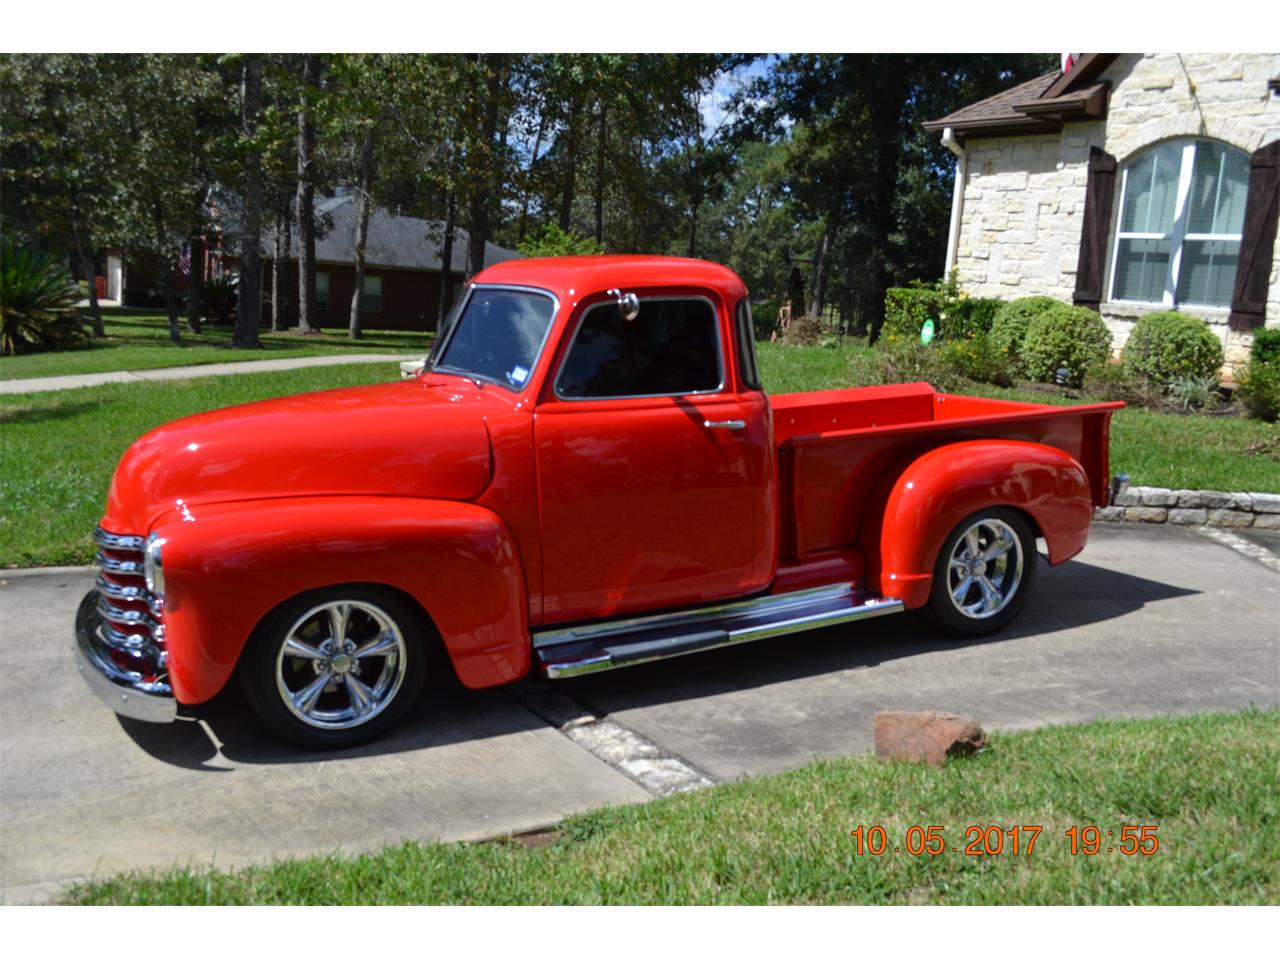 1950 Chevrolet Pickup For Sale Classiccars Com Cc 1150656